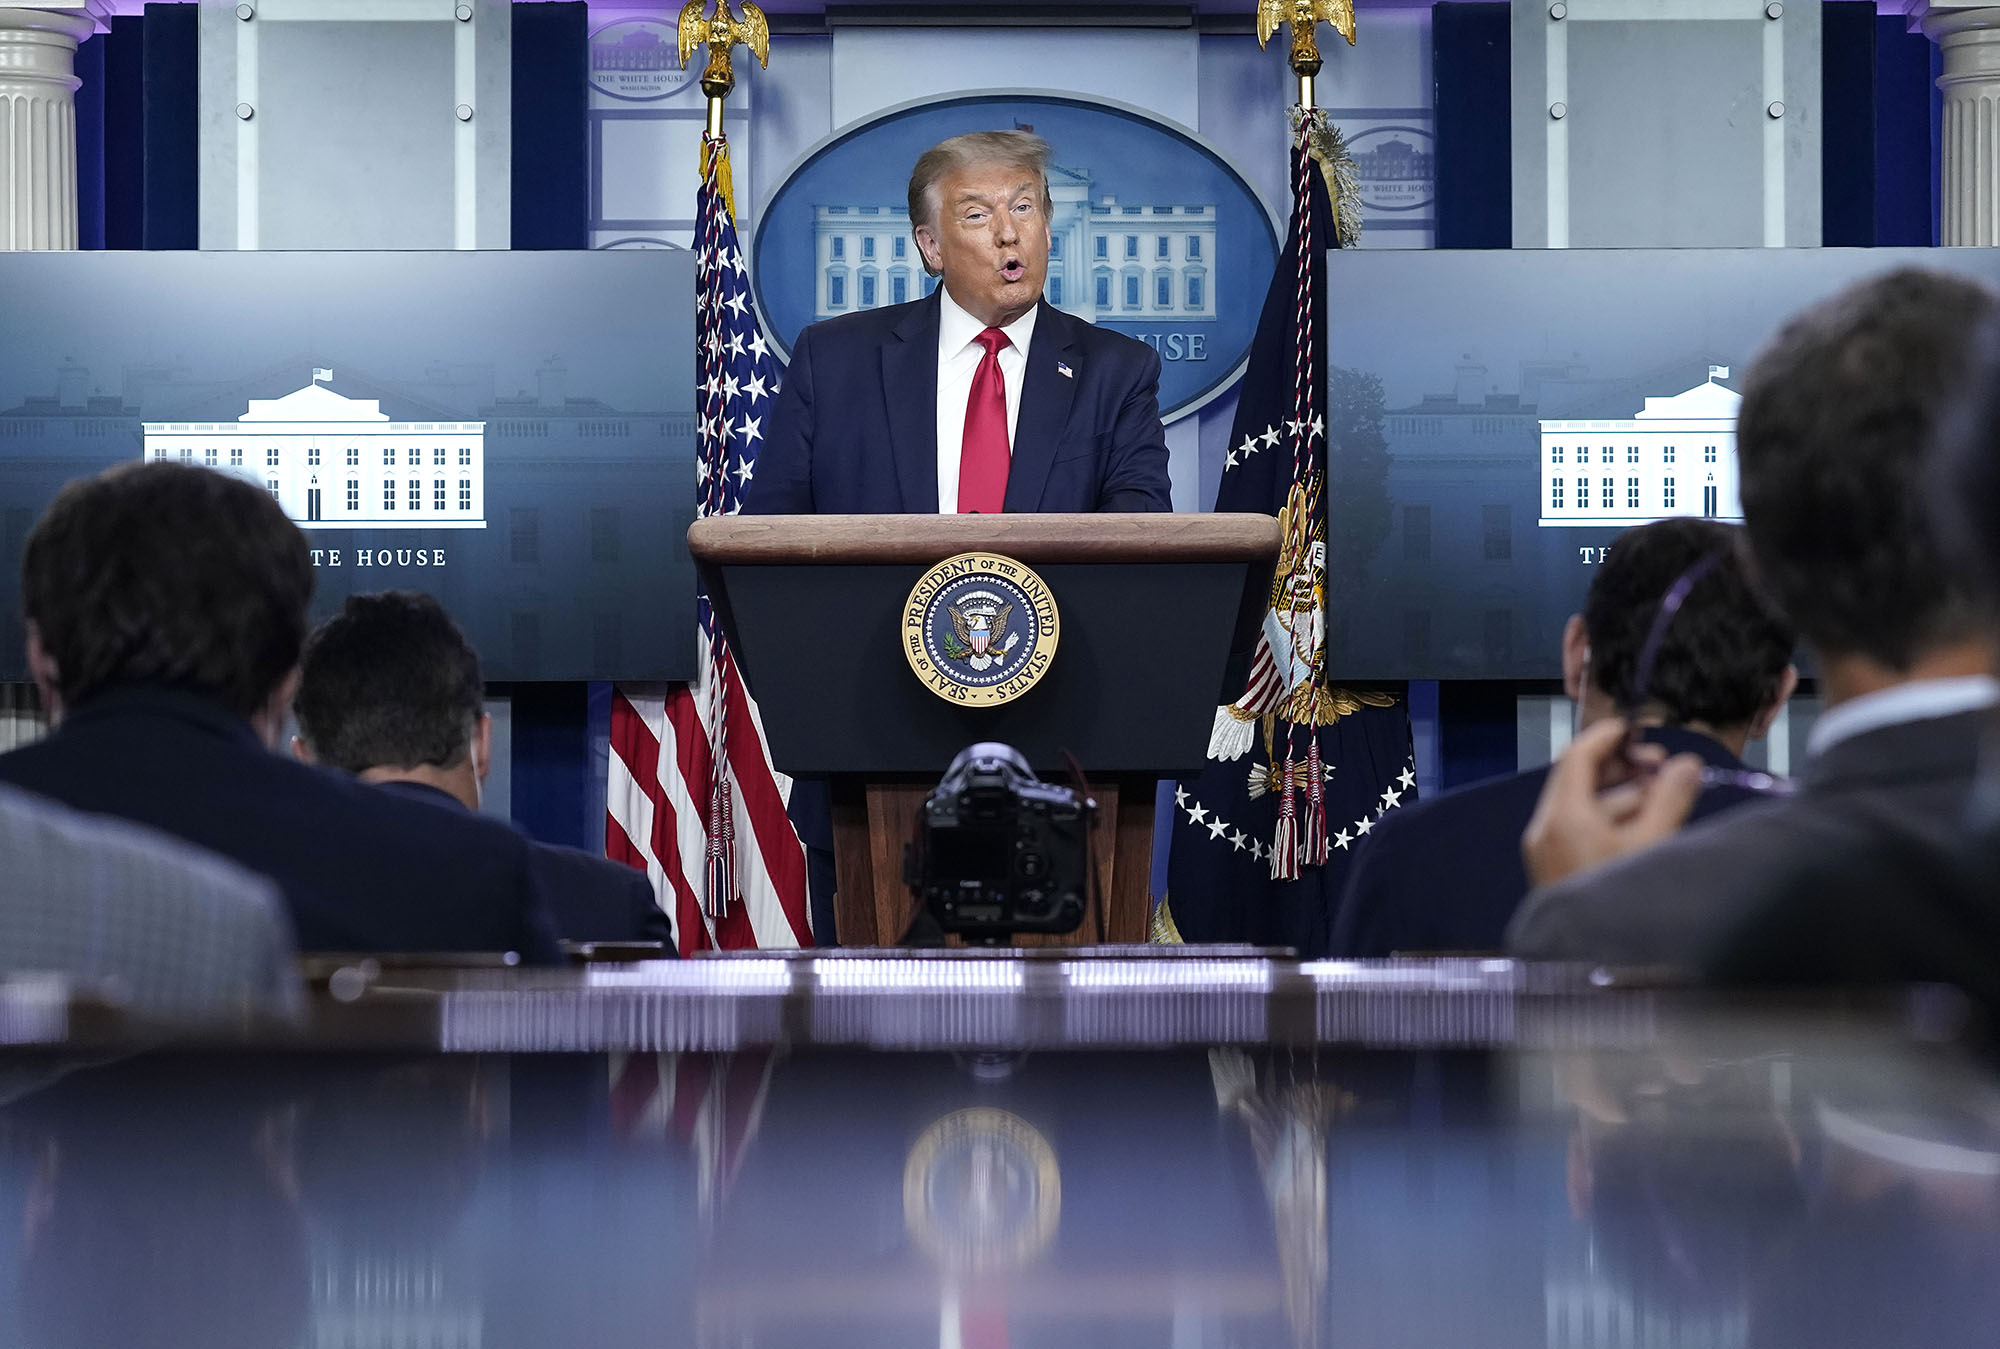 President Donald Trump speaks at a press conference on Monday, August 3, in Washington.